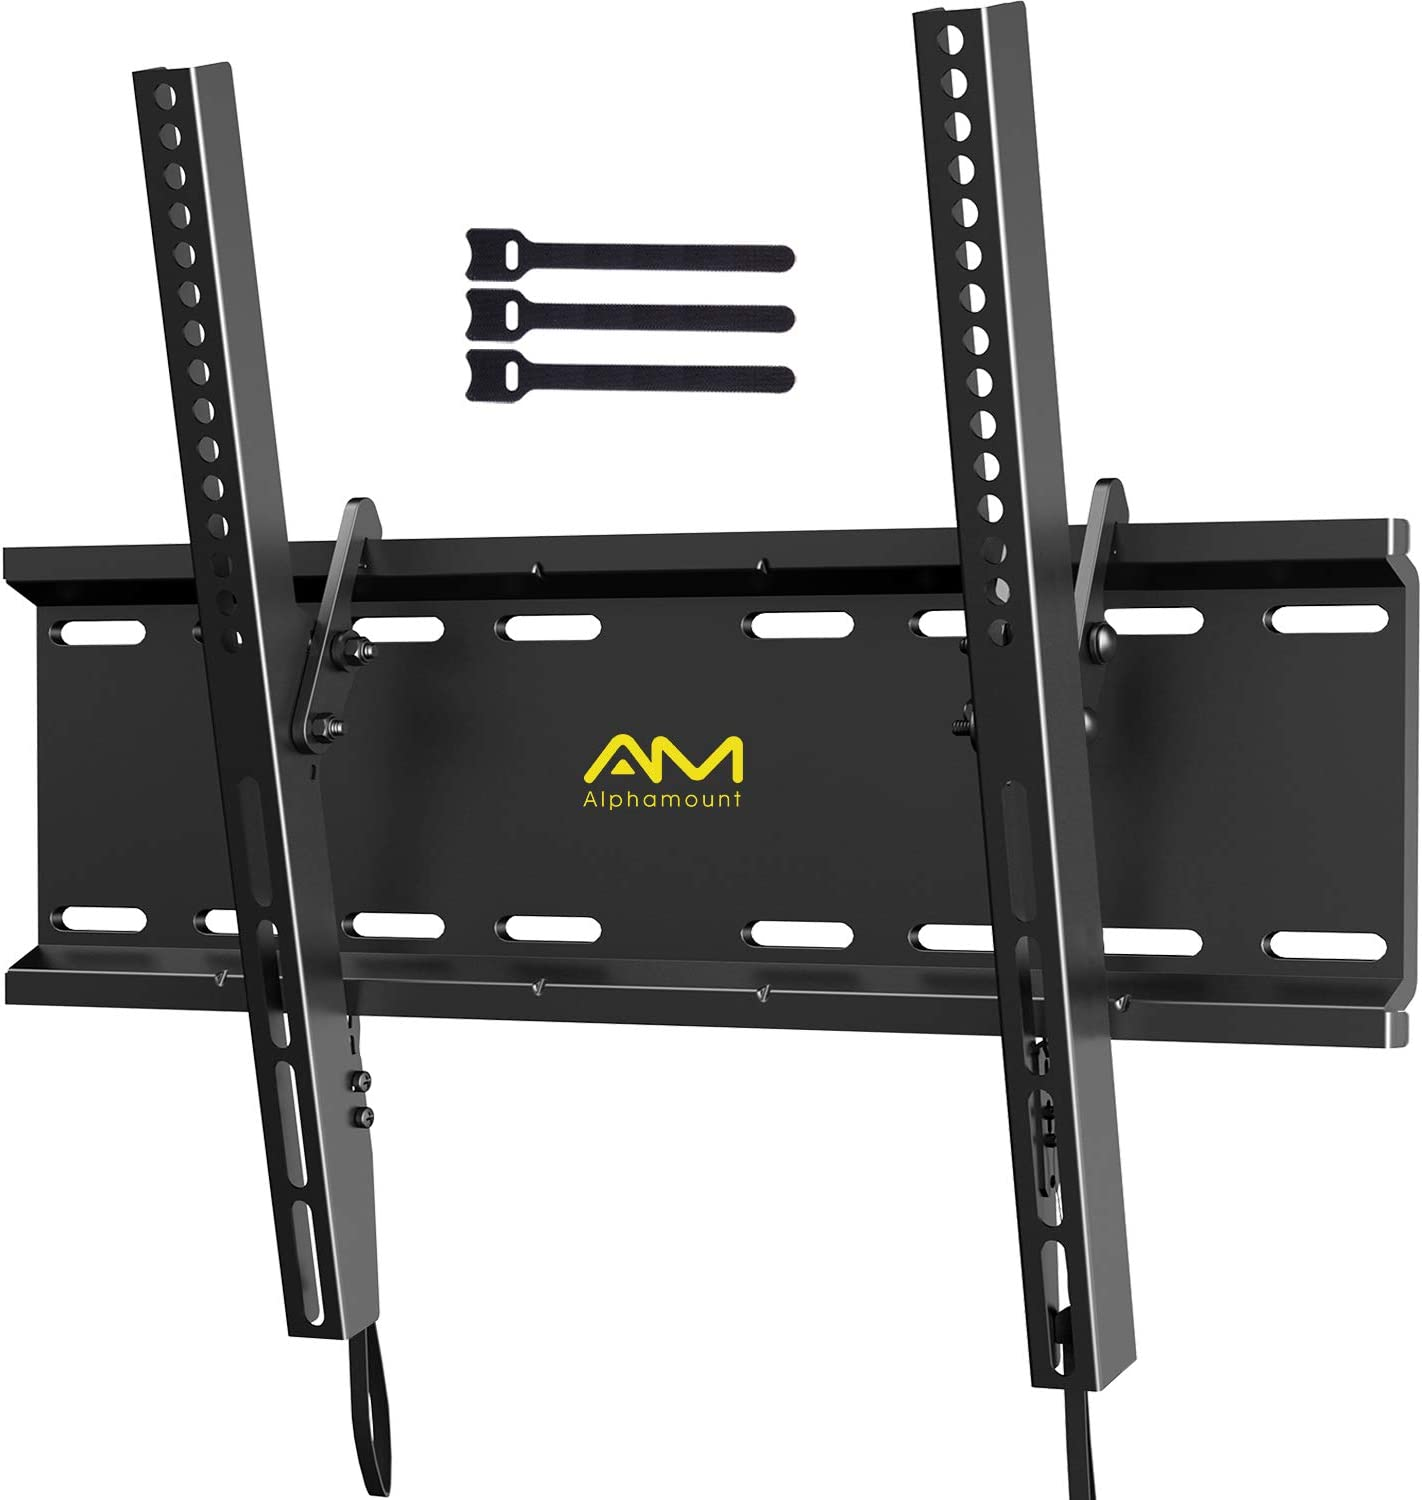 Amazon Com Am Alphamount Tilting Tv Wall Mount Bracket For 23 55 Inch Led Lcd Oled Flat Screen Curved Tvs Low Profile Tv Wall Mount Holds Up To 115lbs Easy Install With All Hardware Included Max Vesa